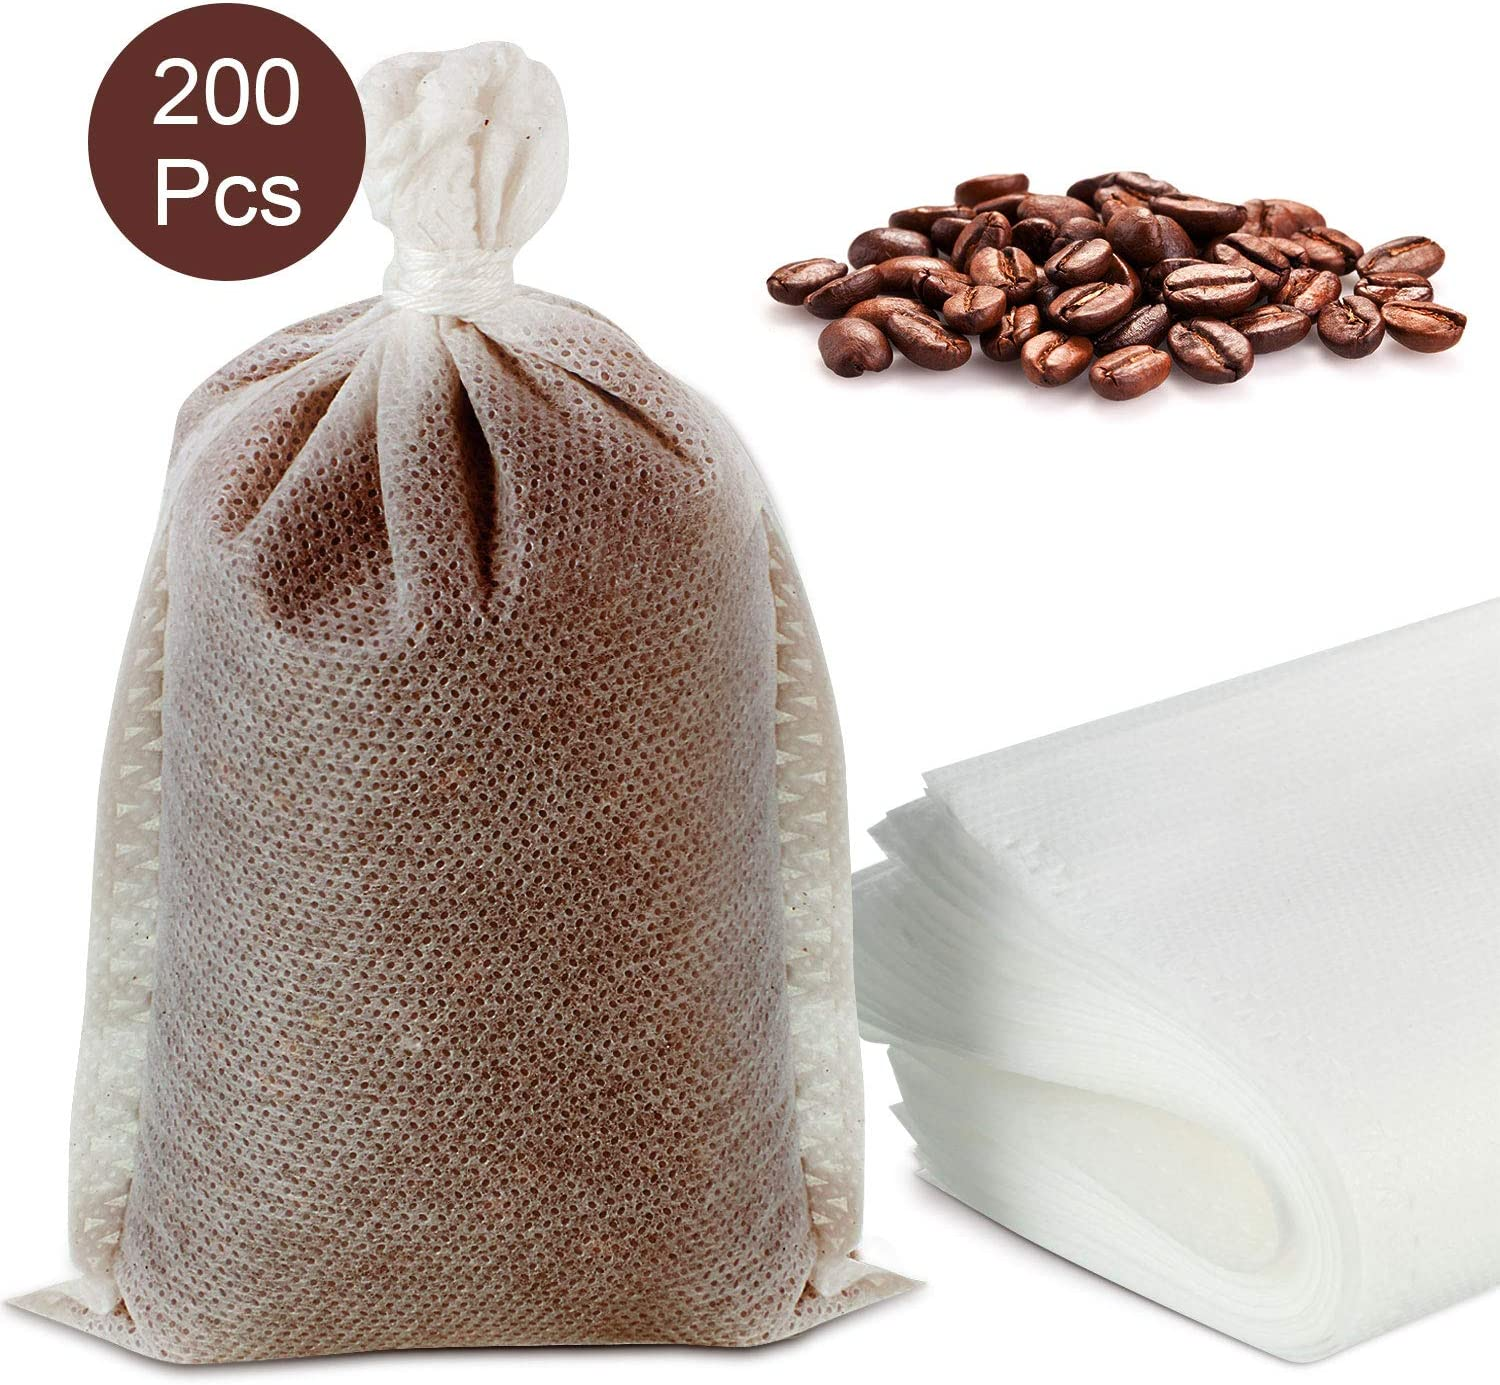 200 Pieces nicht Mess Cold Brew Coffee Filters,nicht Mess Coffee Filter Mesh Tea Filter Bags Disposable Mesh Brewing Bags with Drawstring for Concentrate, Iced Coffee Maker, Cold Brew Coffee, Loose Leaf Tea